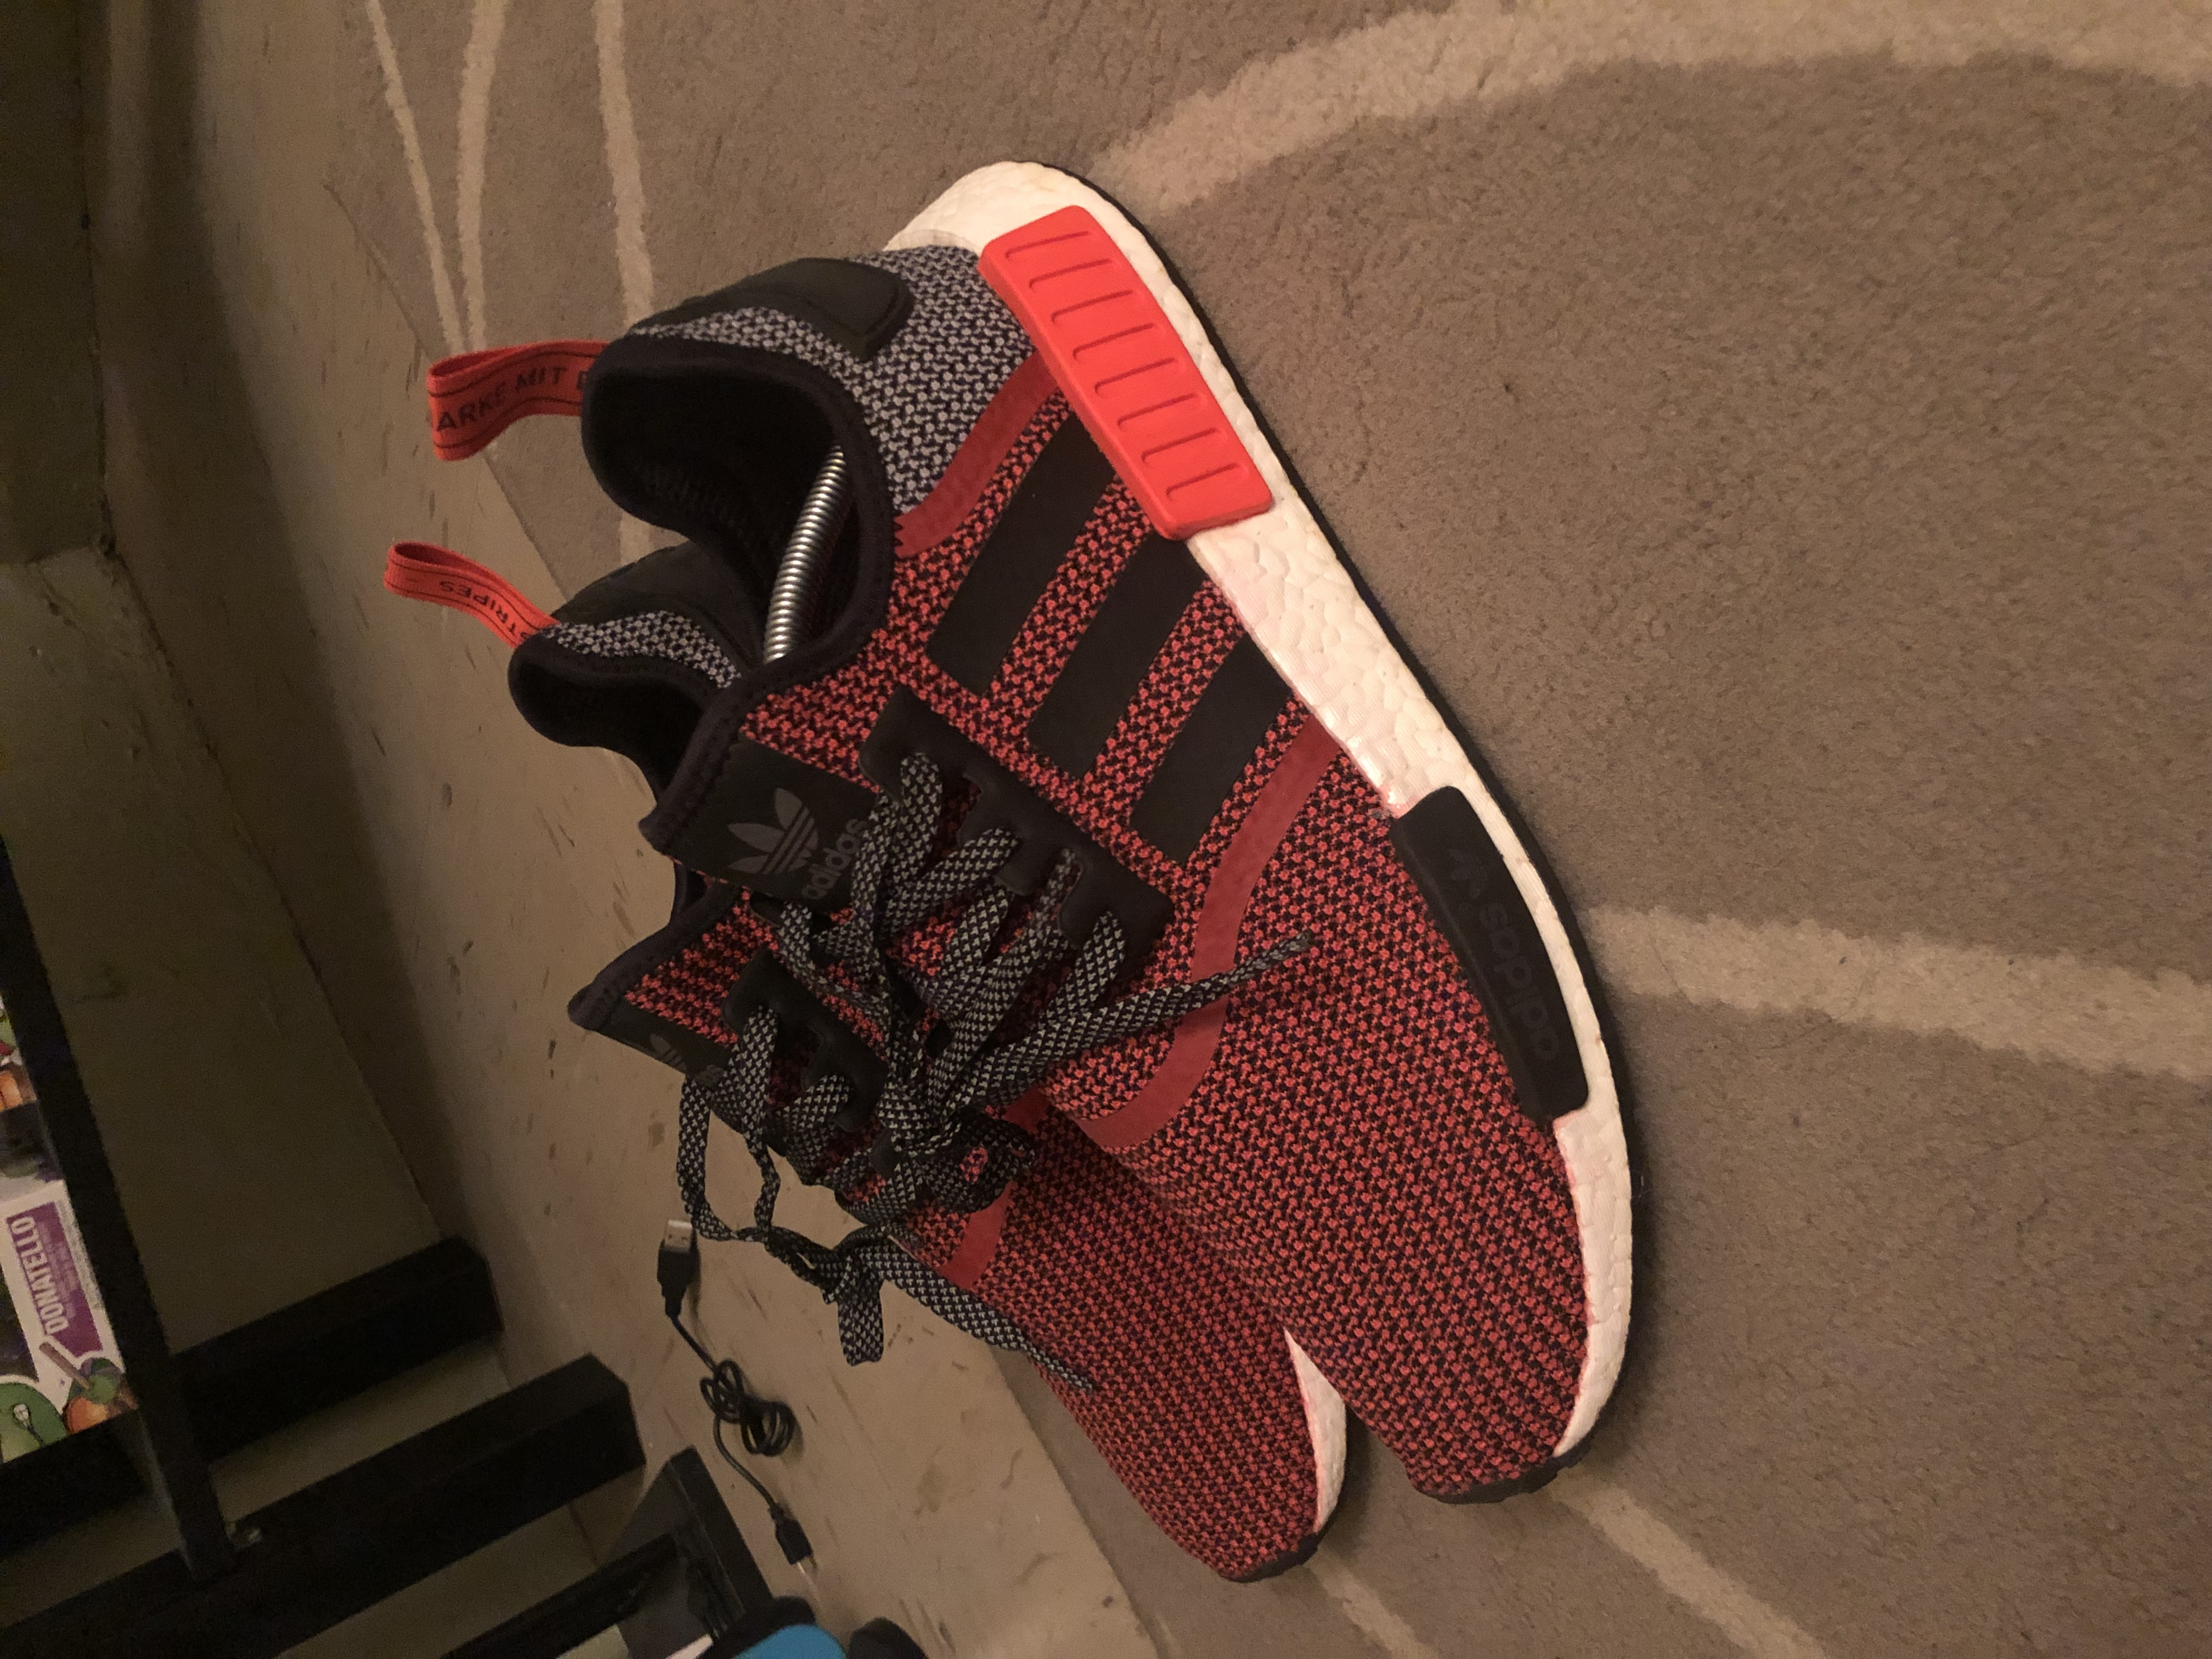 a3a2765292e78 Adidas Adidas Nmd R1 Lush Red Kith Yeezy Supreme Off-white Boost 700 ...